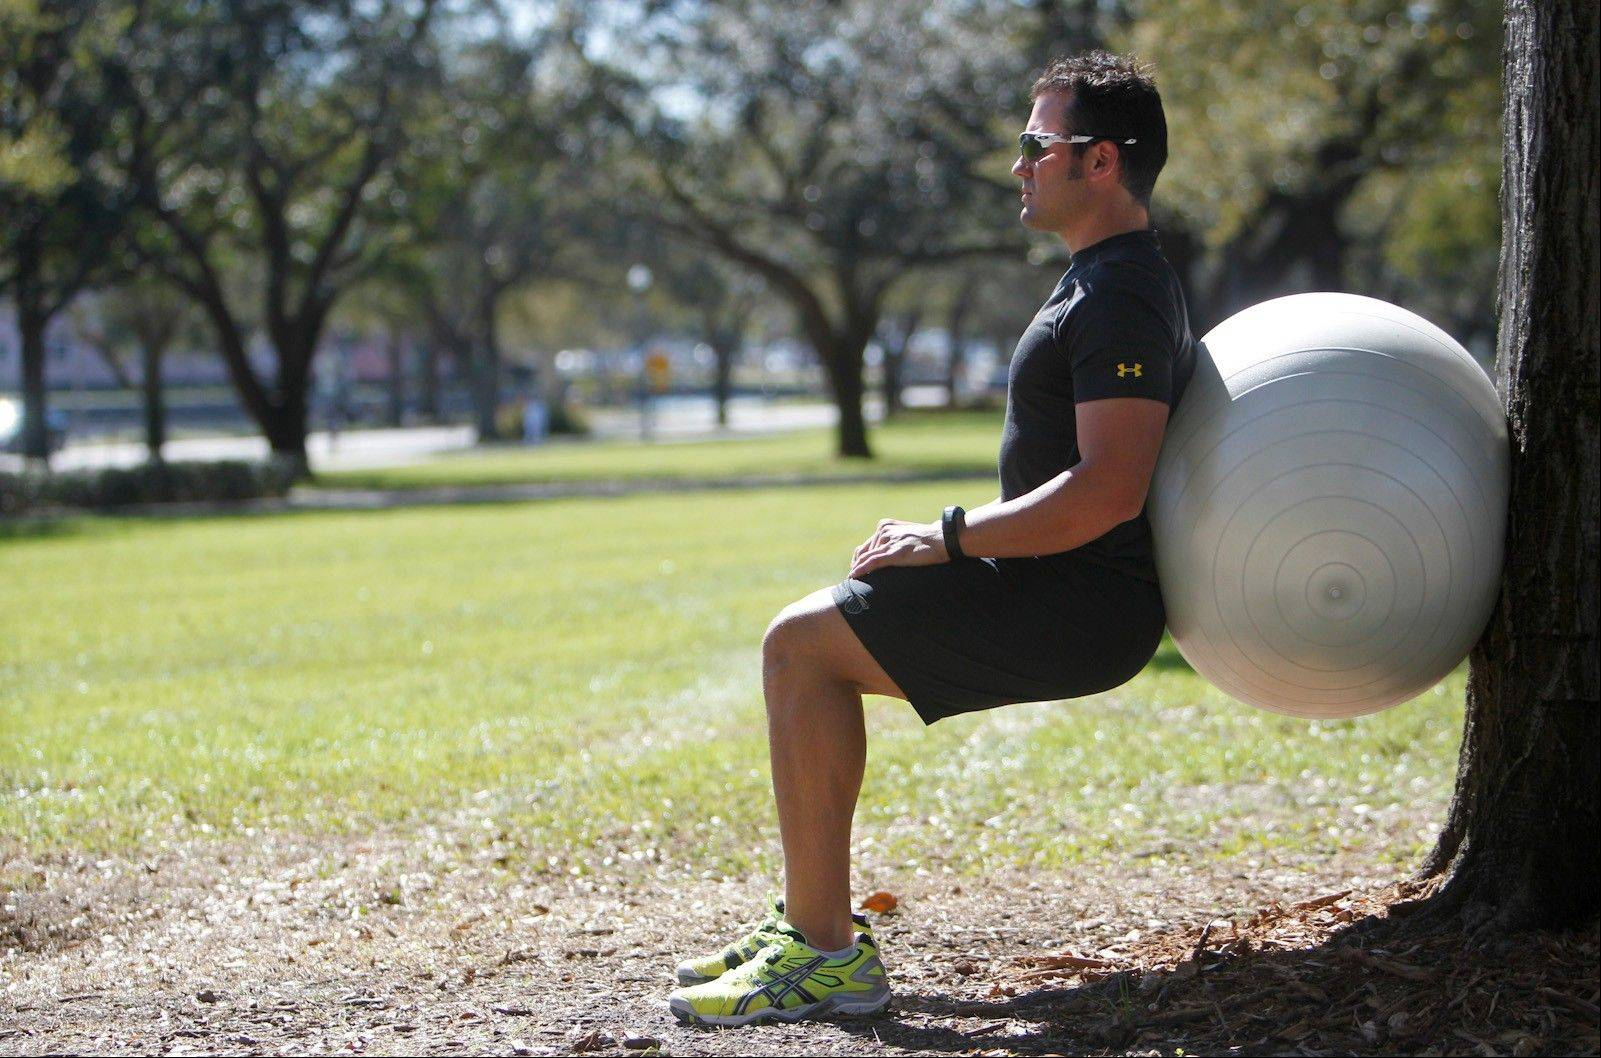 A wall squat with ball strengthens the lower body.